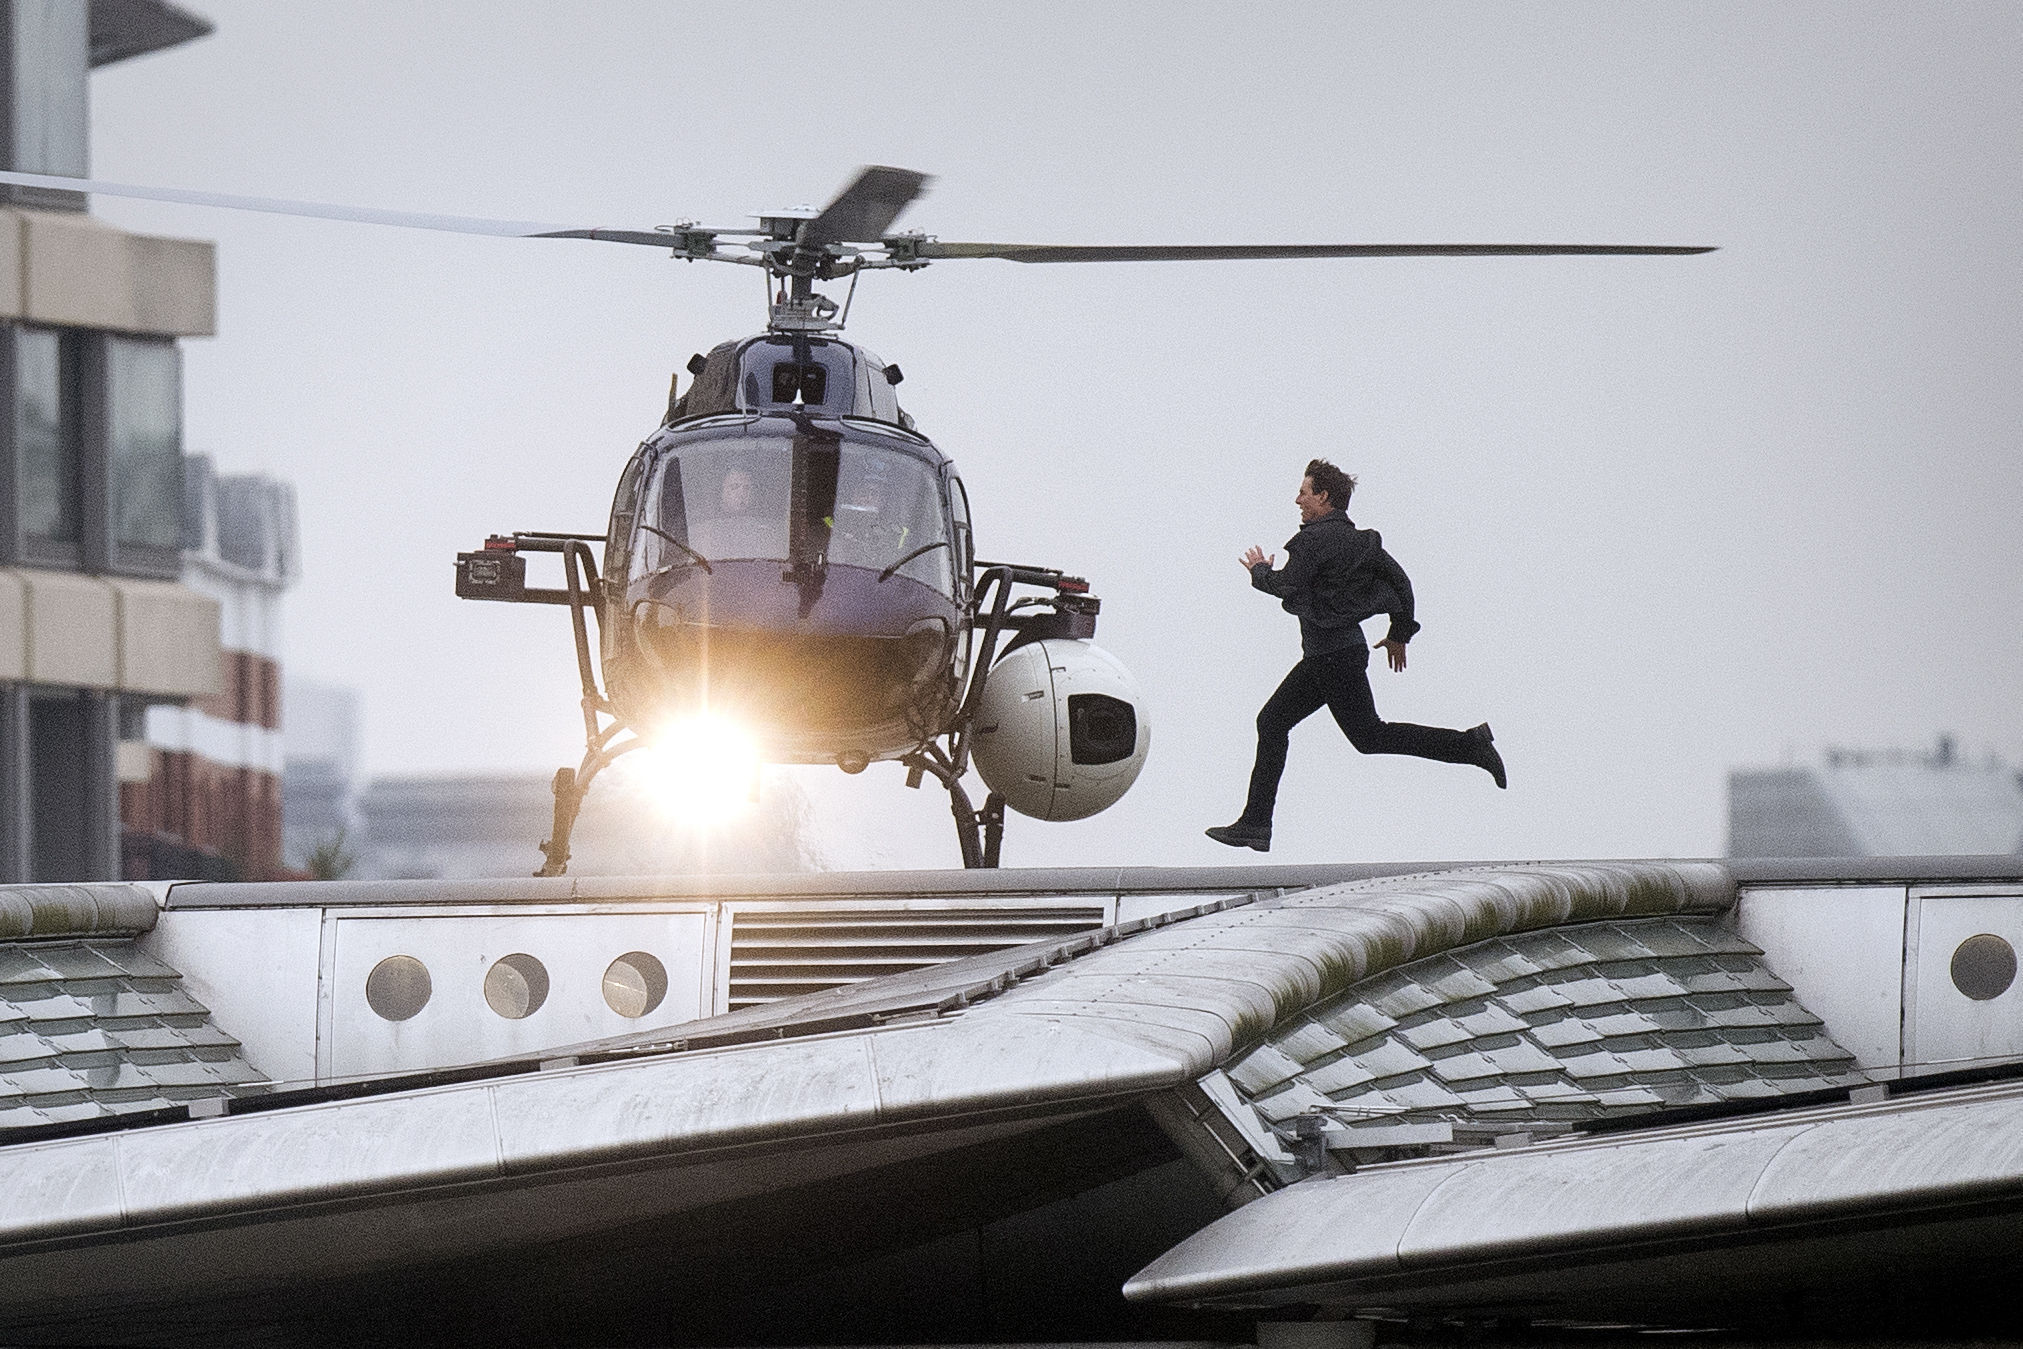 Tom Cruise joins Instagram, reveals next 'Mission: Impossible' title